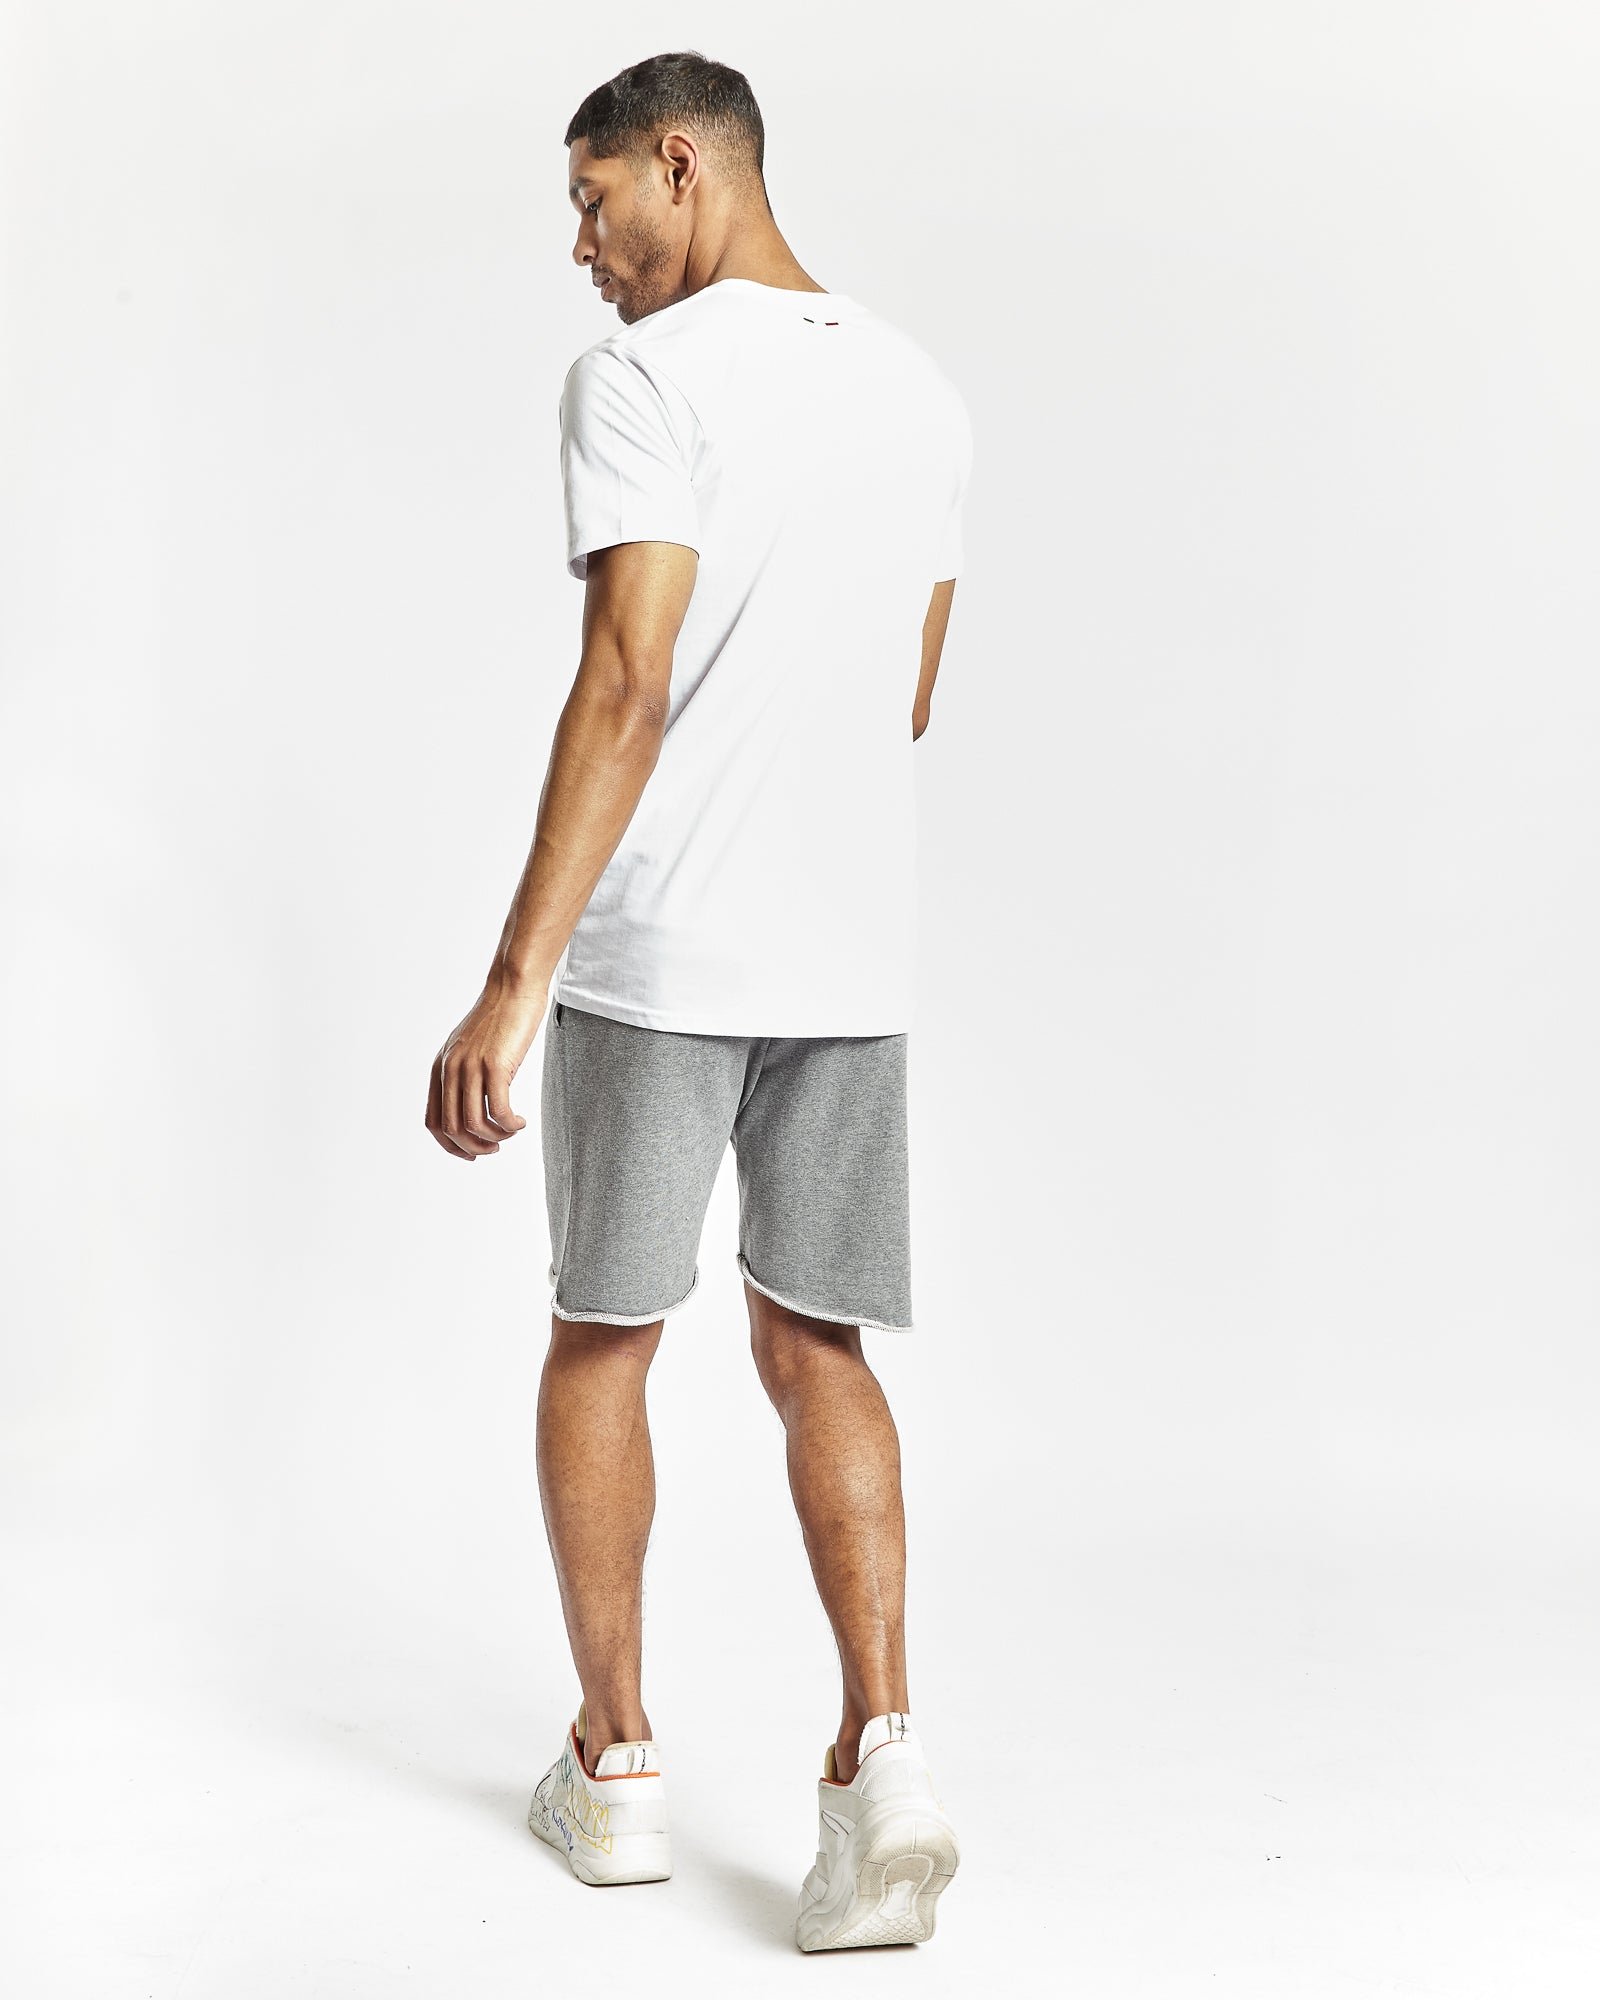 Di Nardo Men's Grey Track Shorts